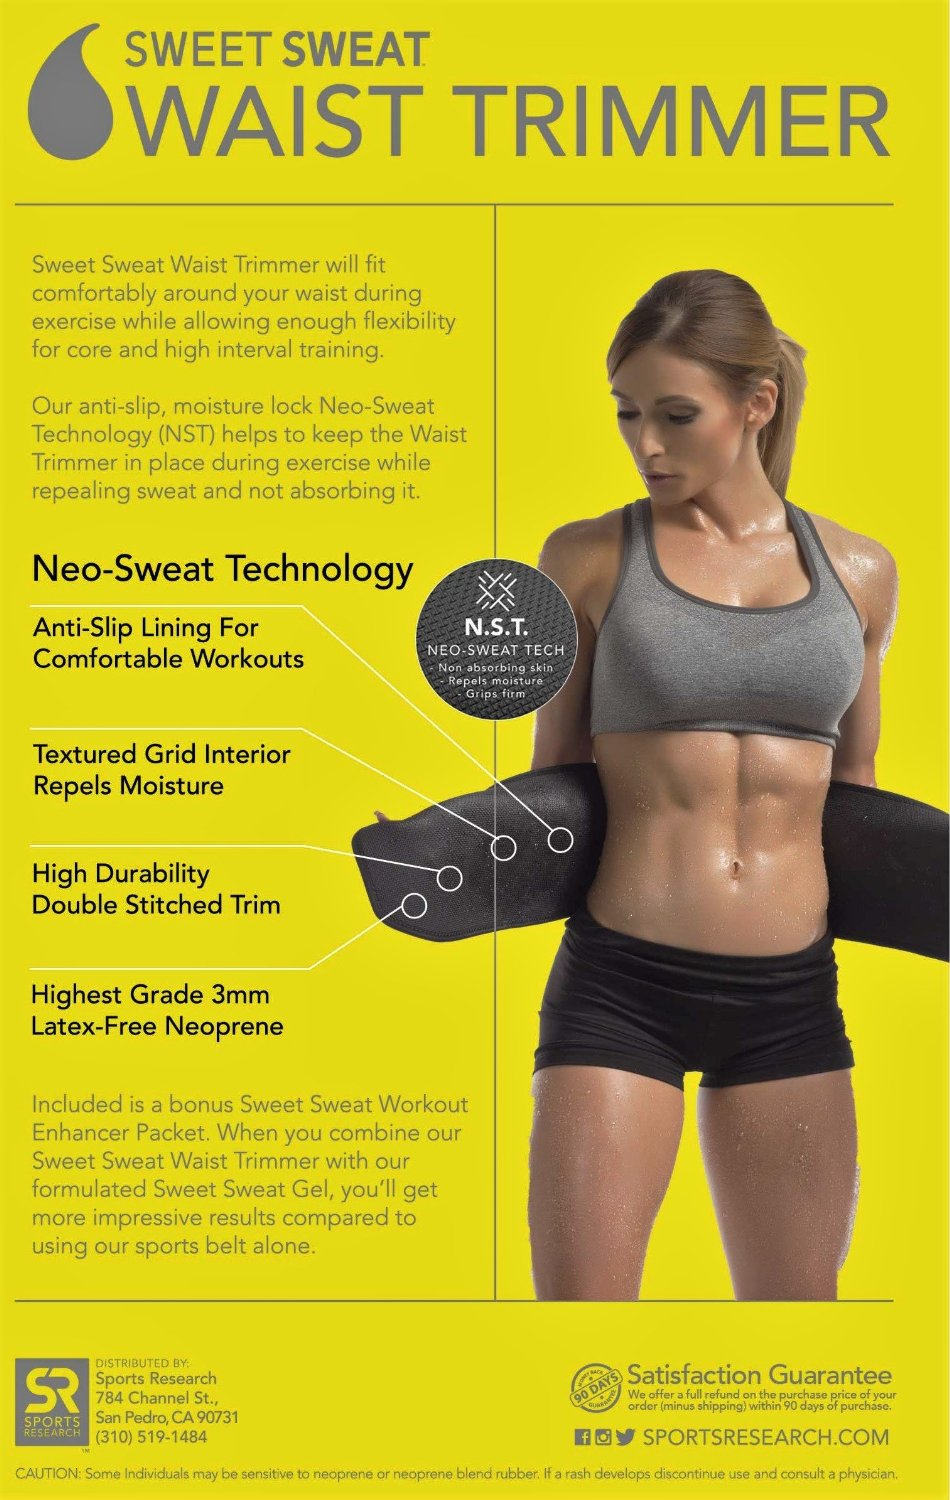 caa8c97d25 GET YOUR SWEAT ON  The Sweet Sweat Waist Trimmer increases your core  temperature during exercise improving sweating and activity.